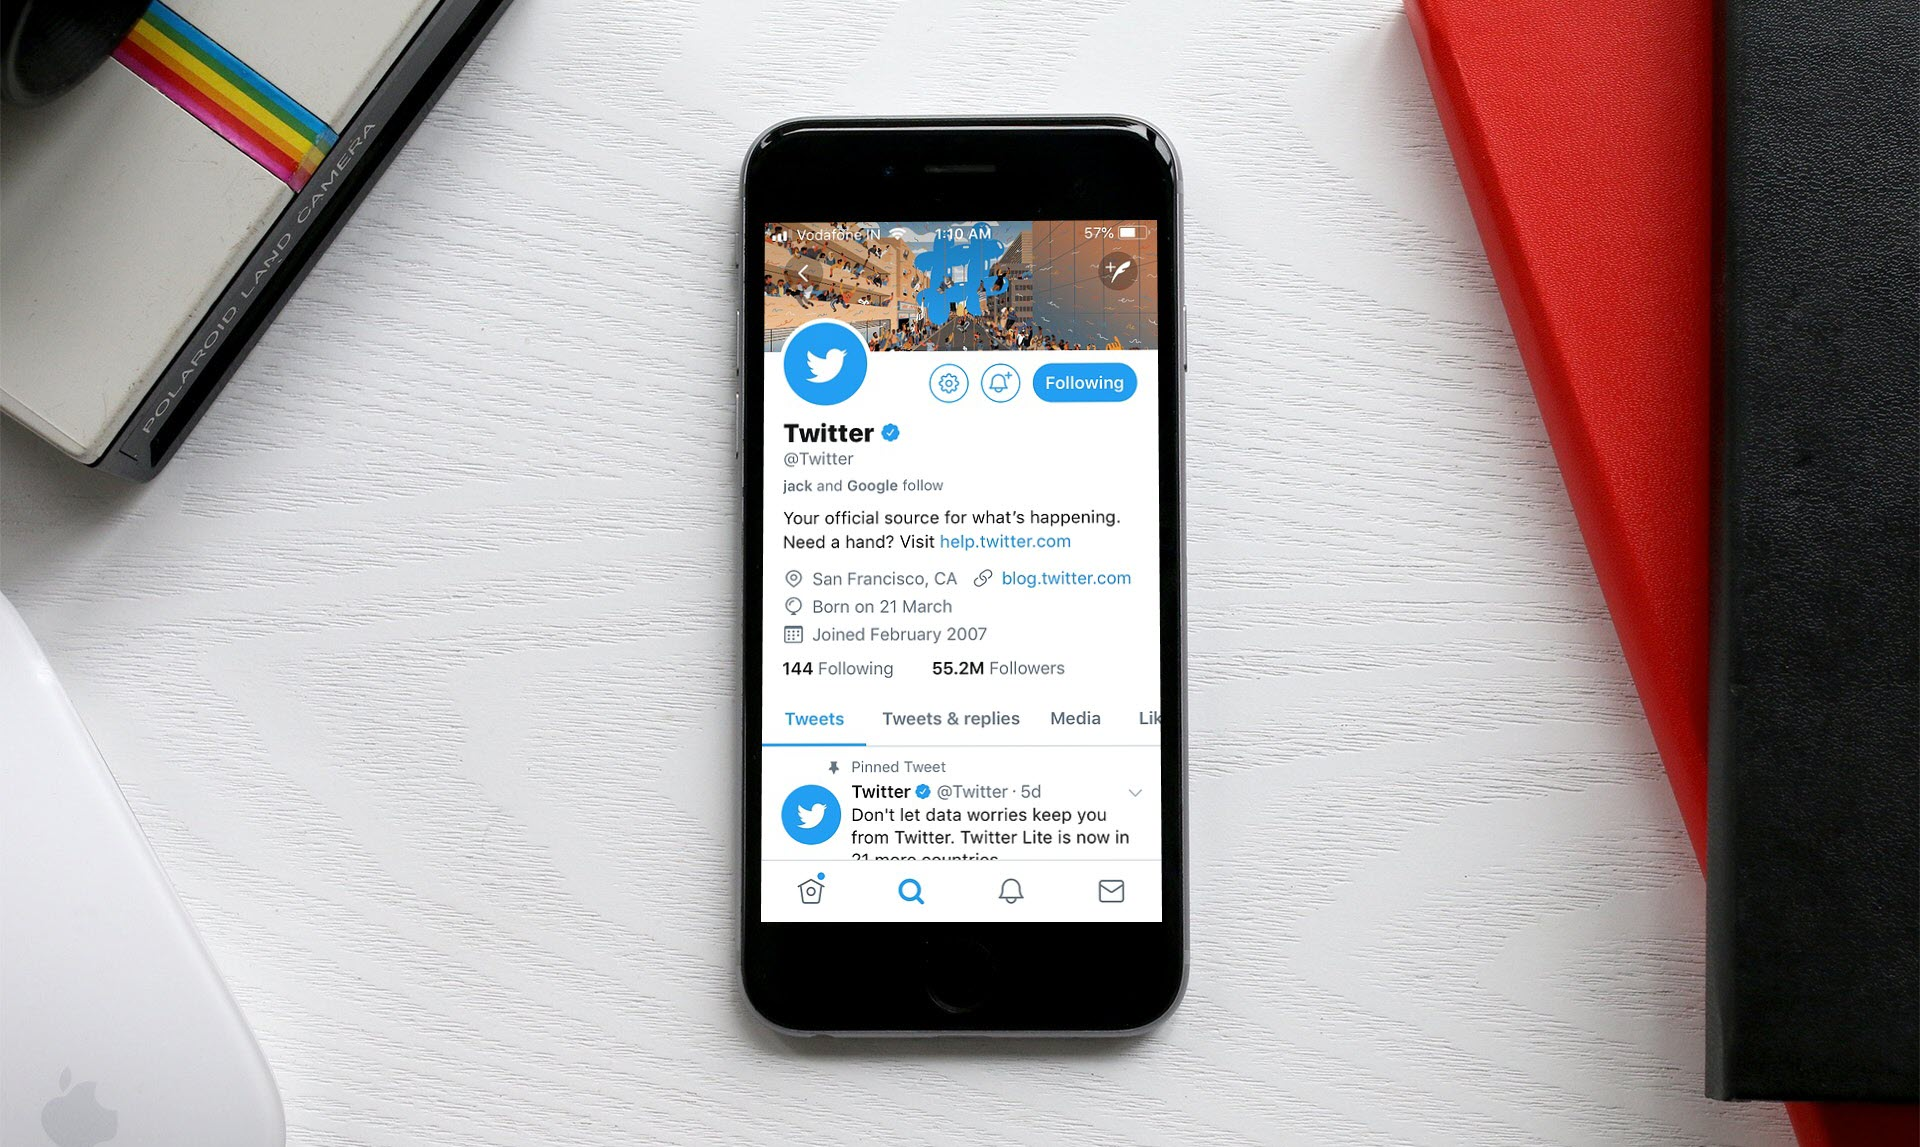 How to verify Twitter account: 5 things you need to know